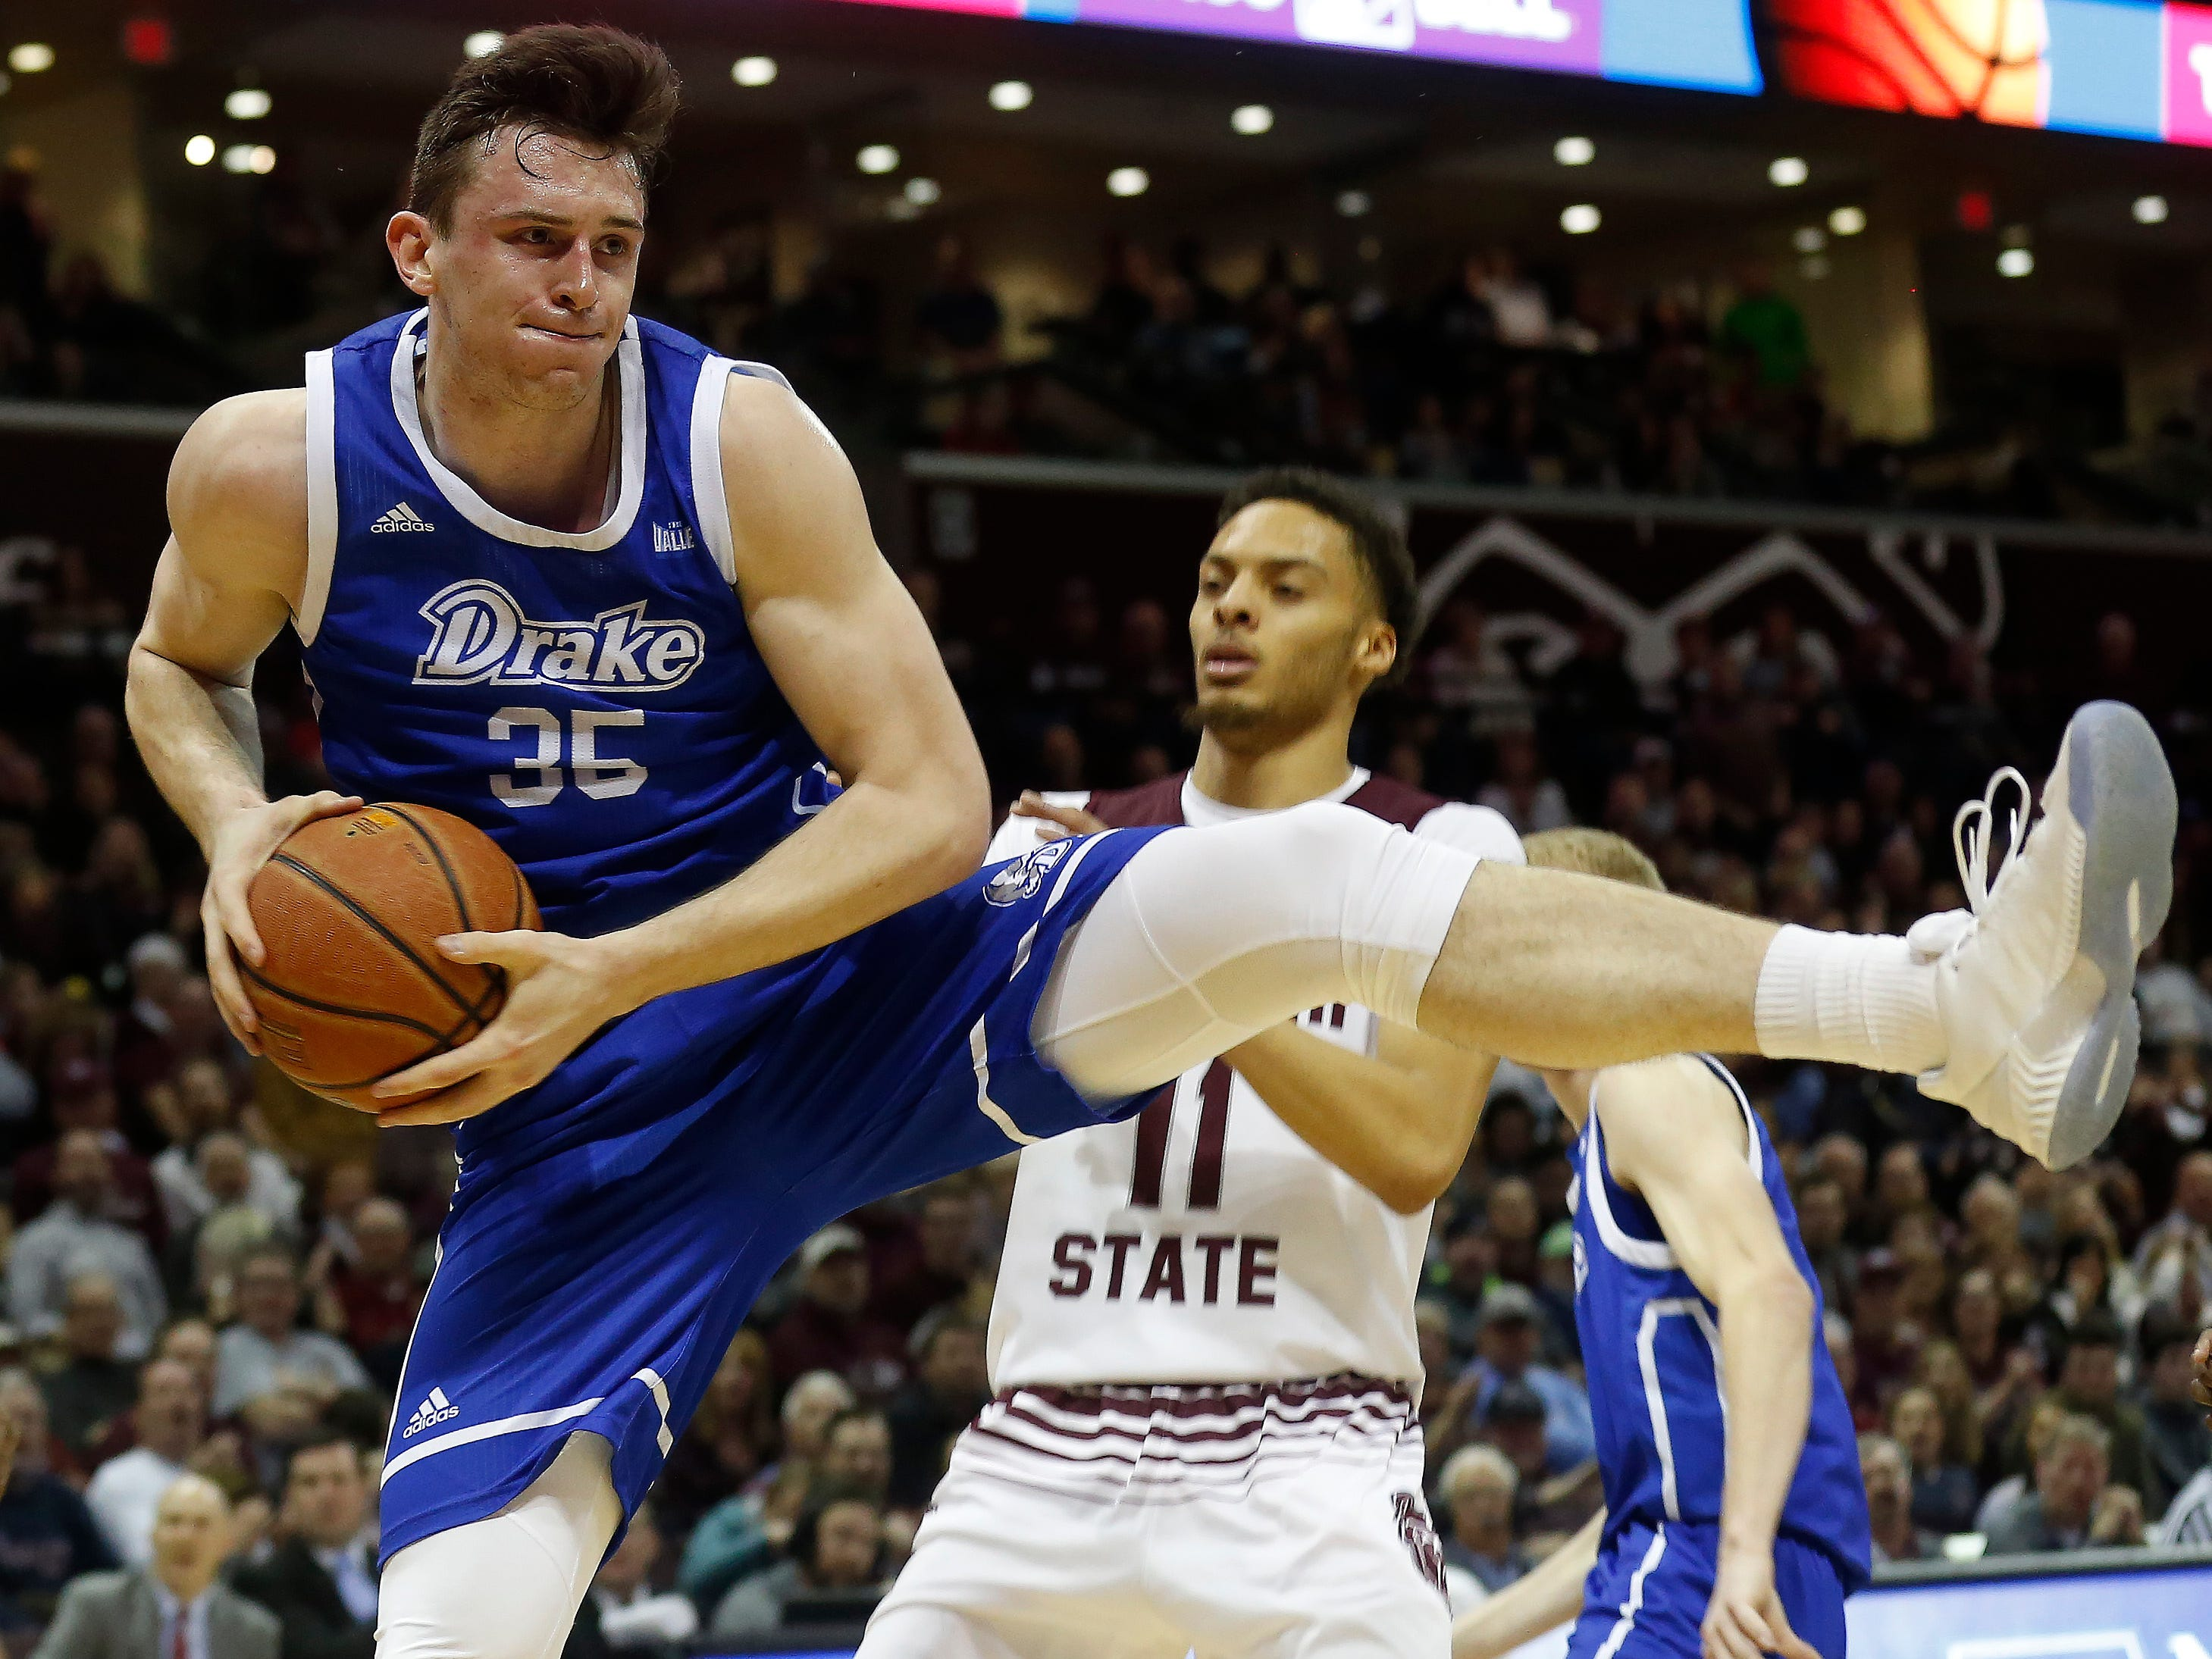 Nick McGlynn, of Drake, comes down with a rebound during the Bulldogs 73-62 over Missouri State at JQH Arena on Saturday, Mar. 2, 2019.